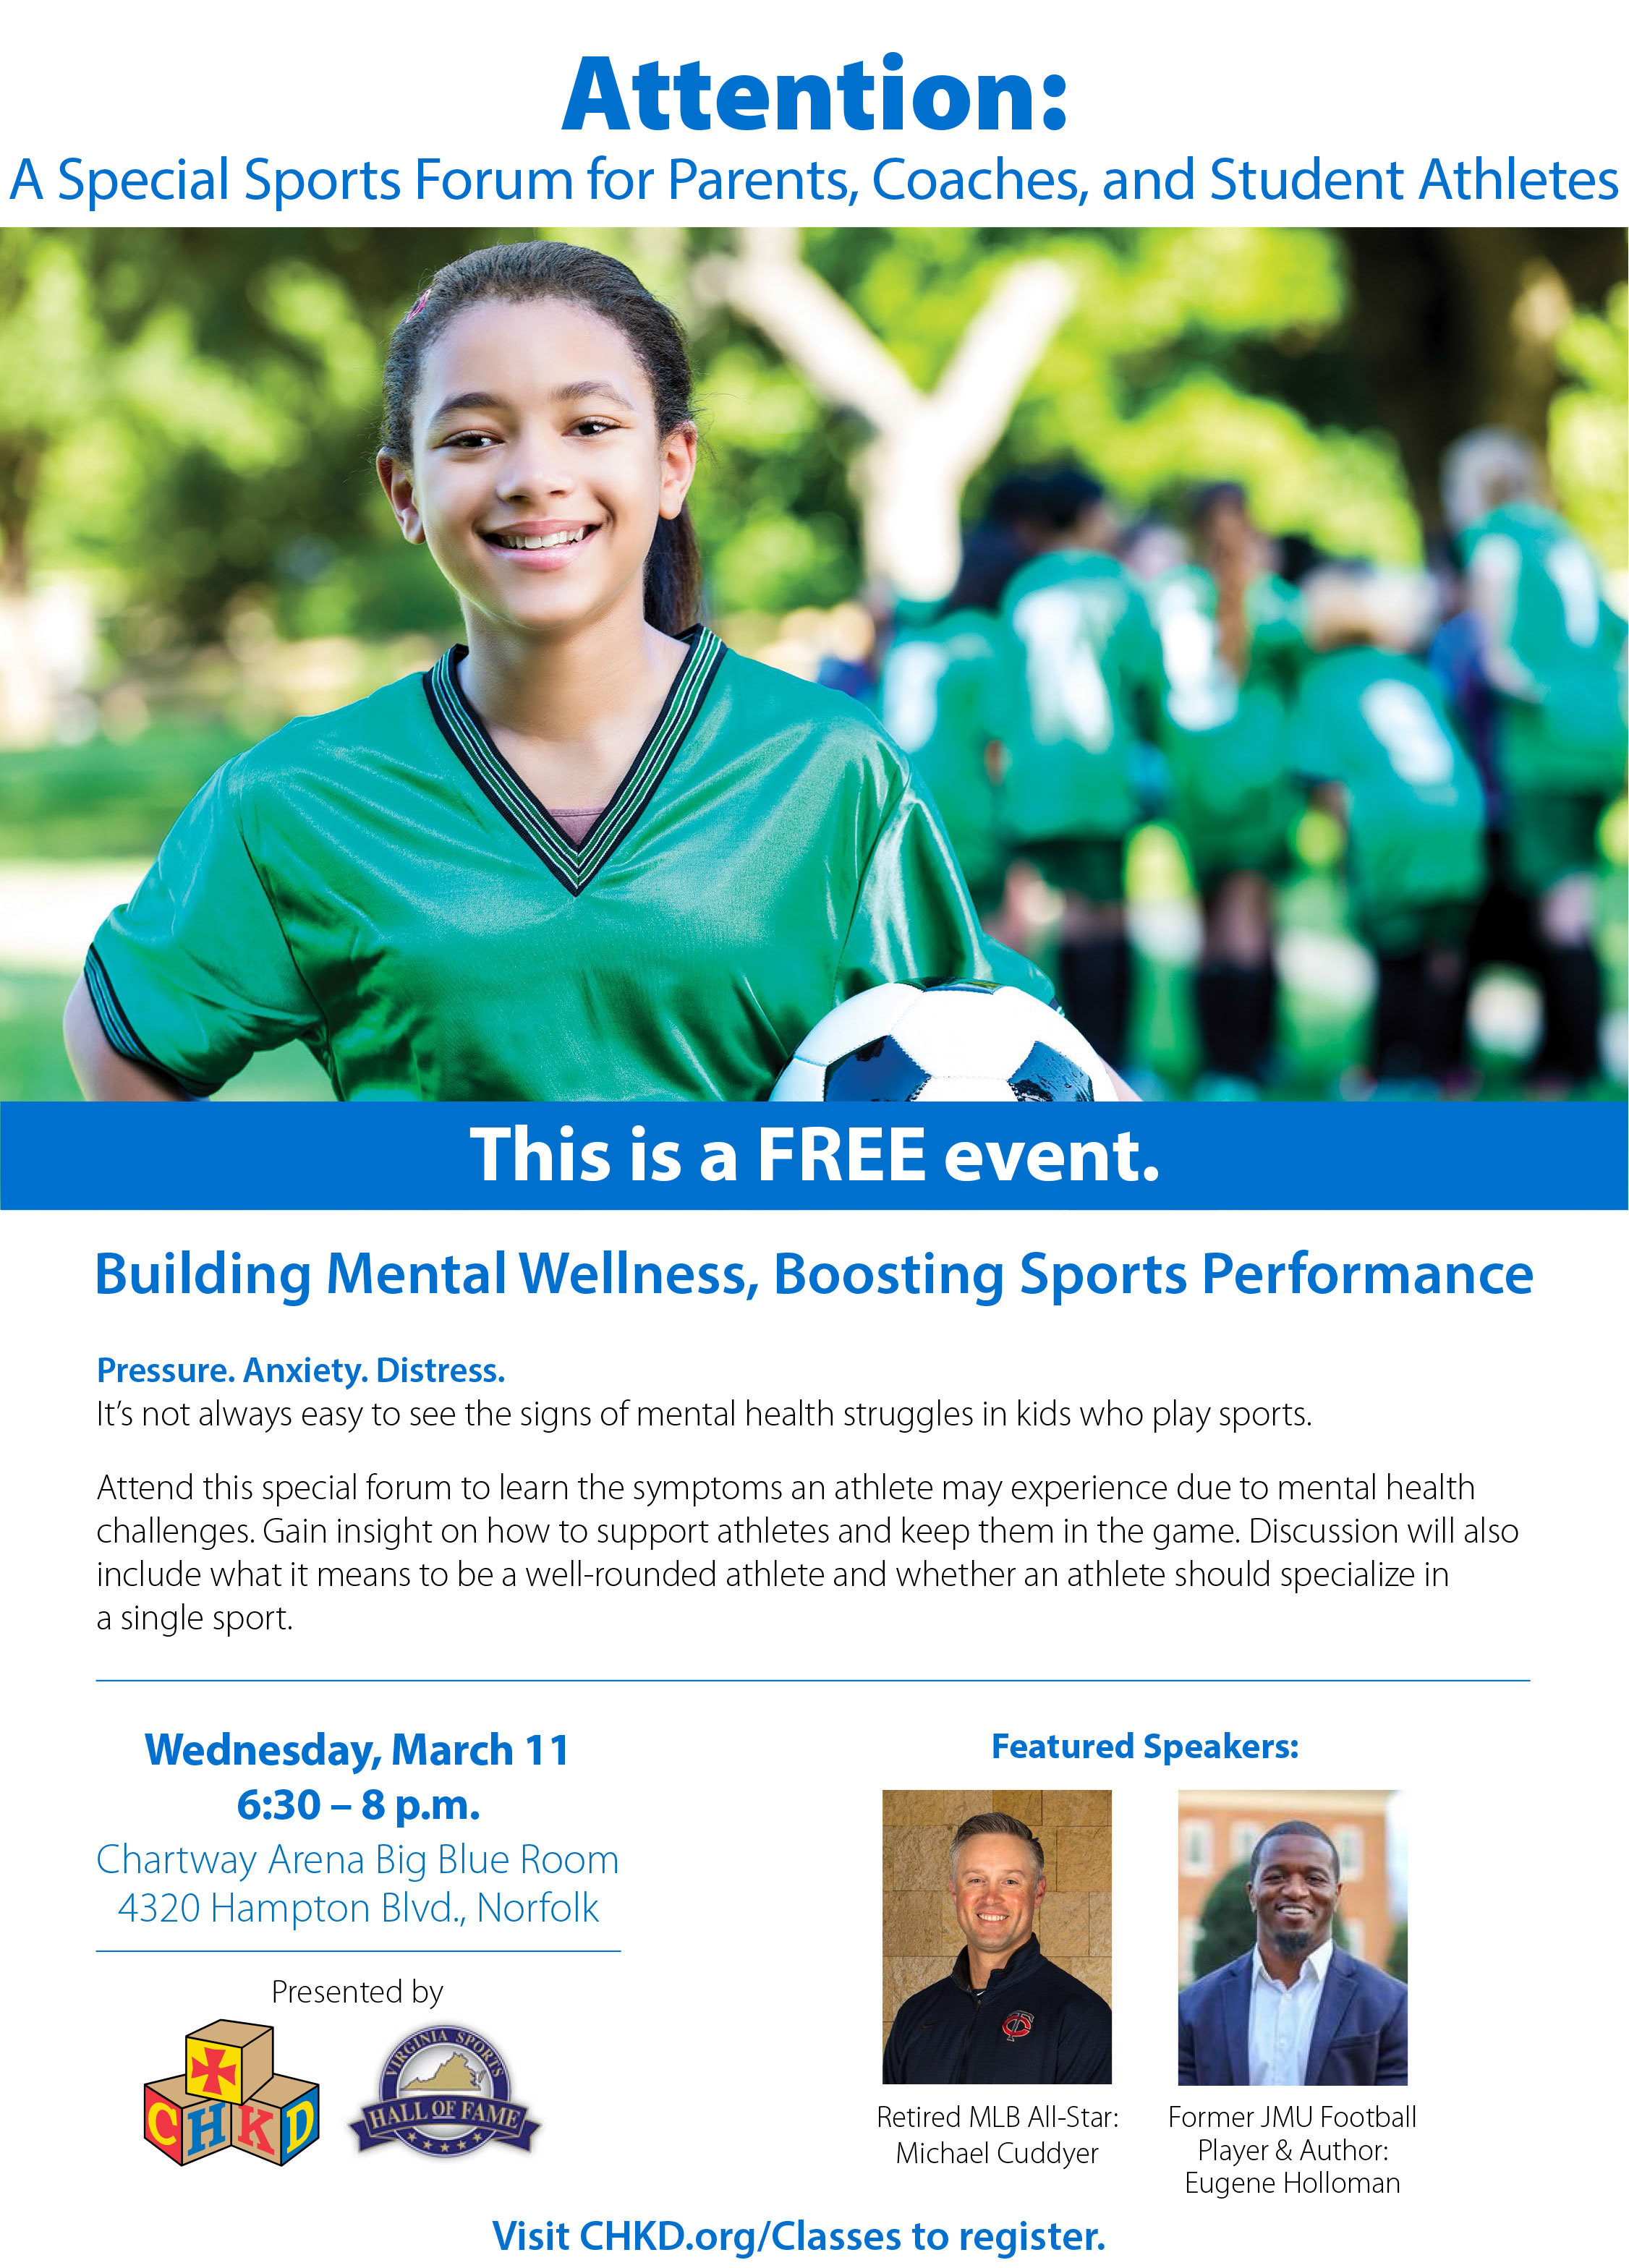 Virginia Sports Hall of Fame and CHKD Highlight Mental Wellness in Youth Sports